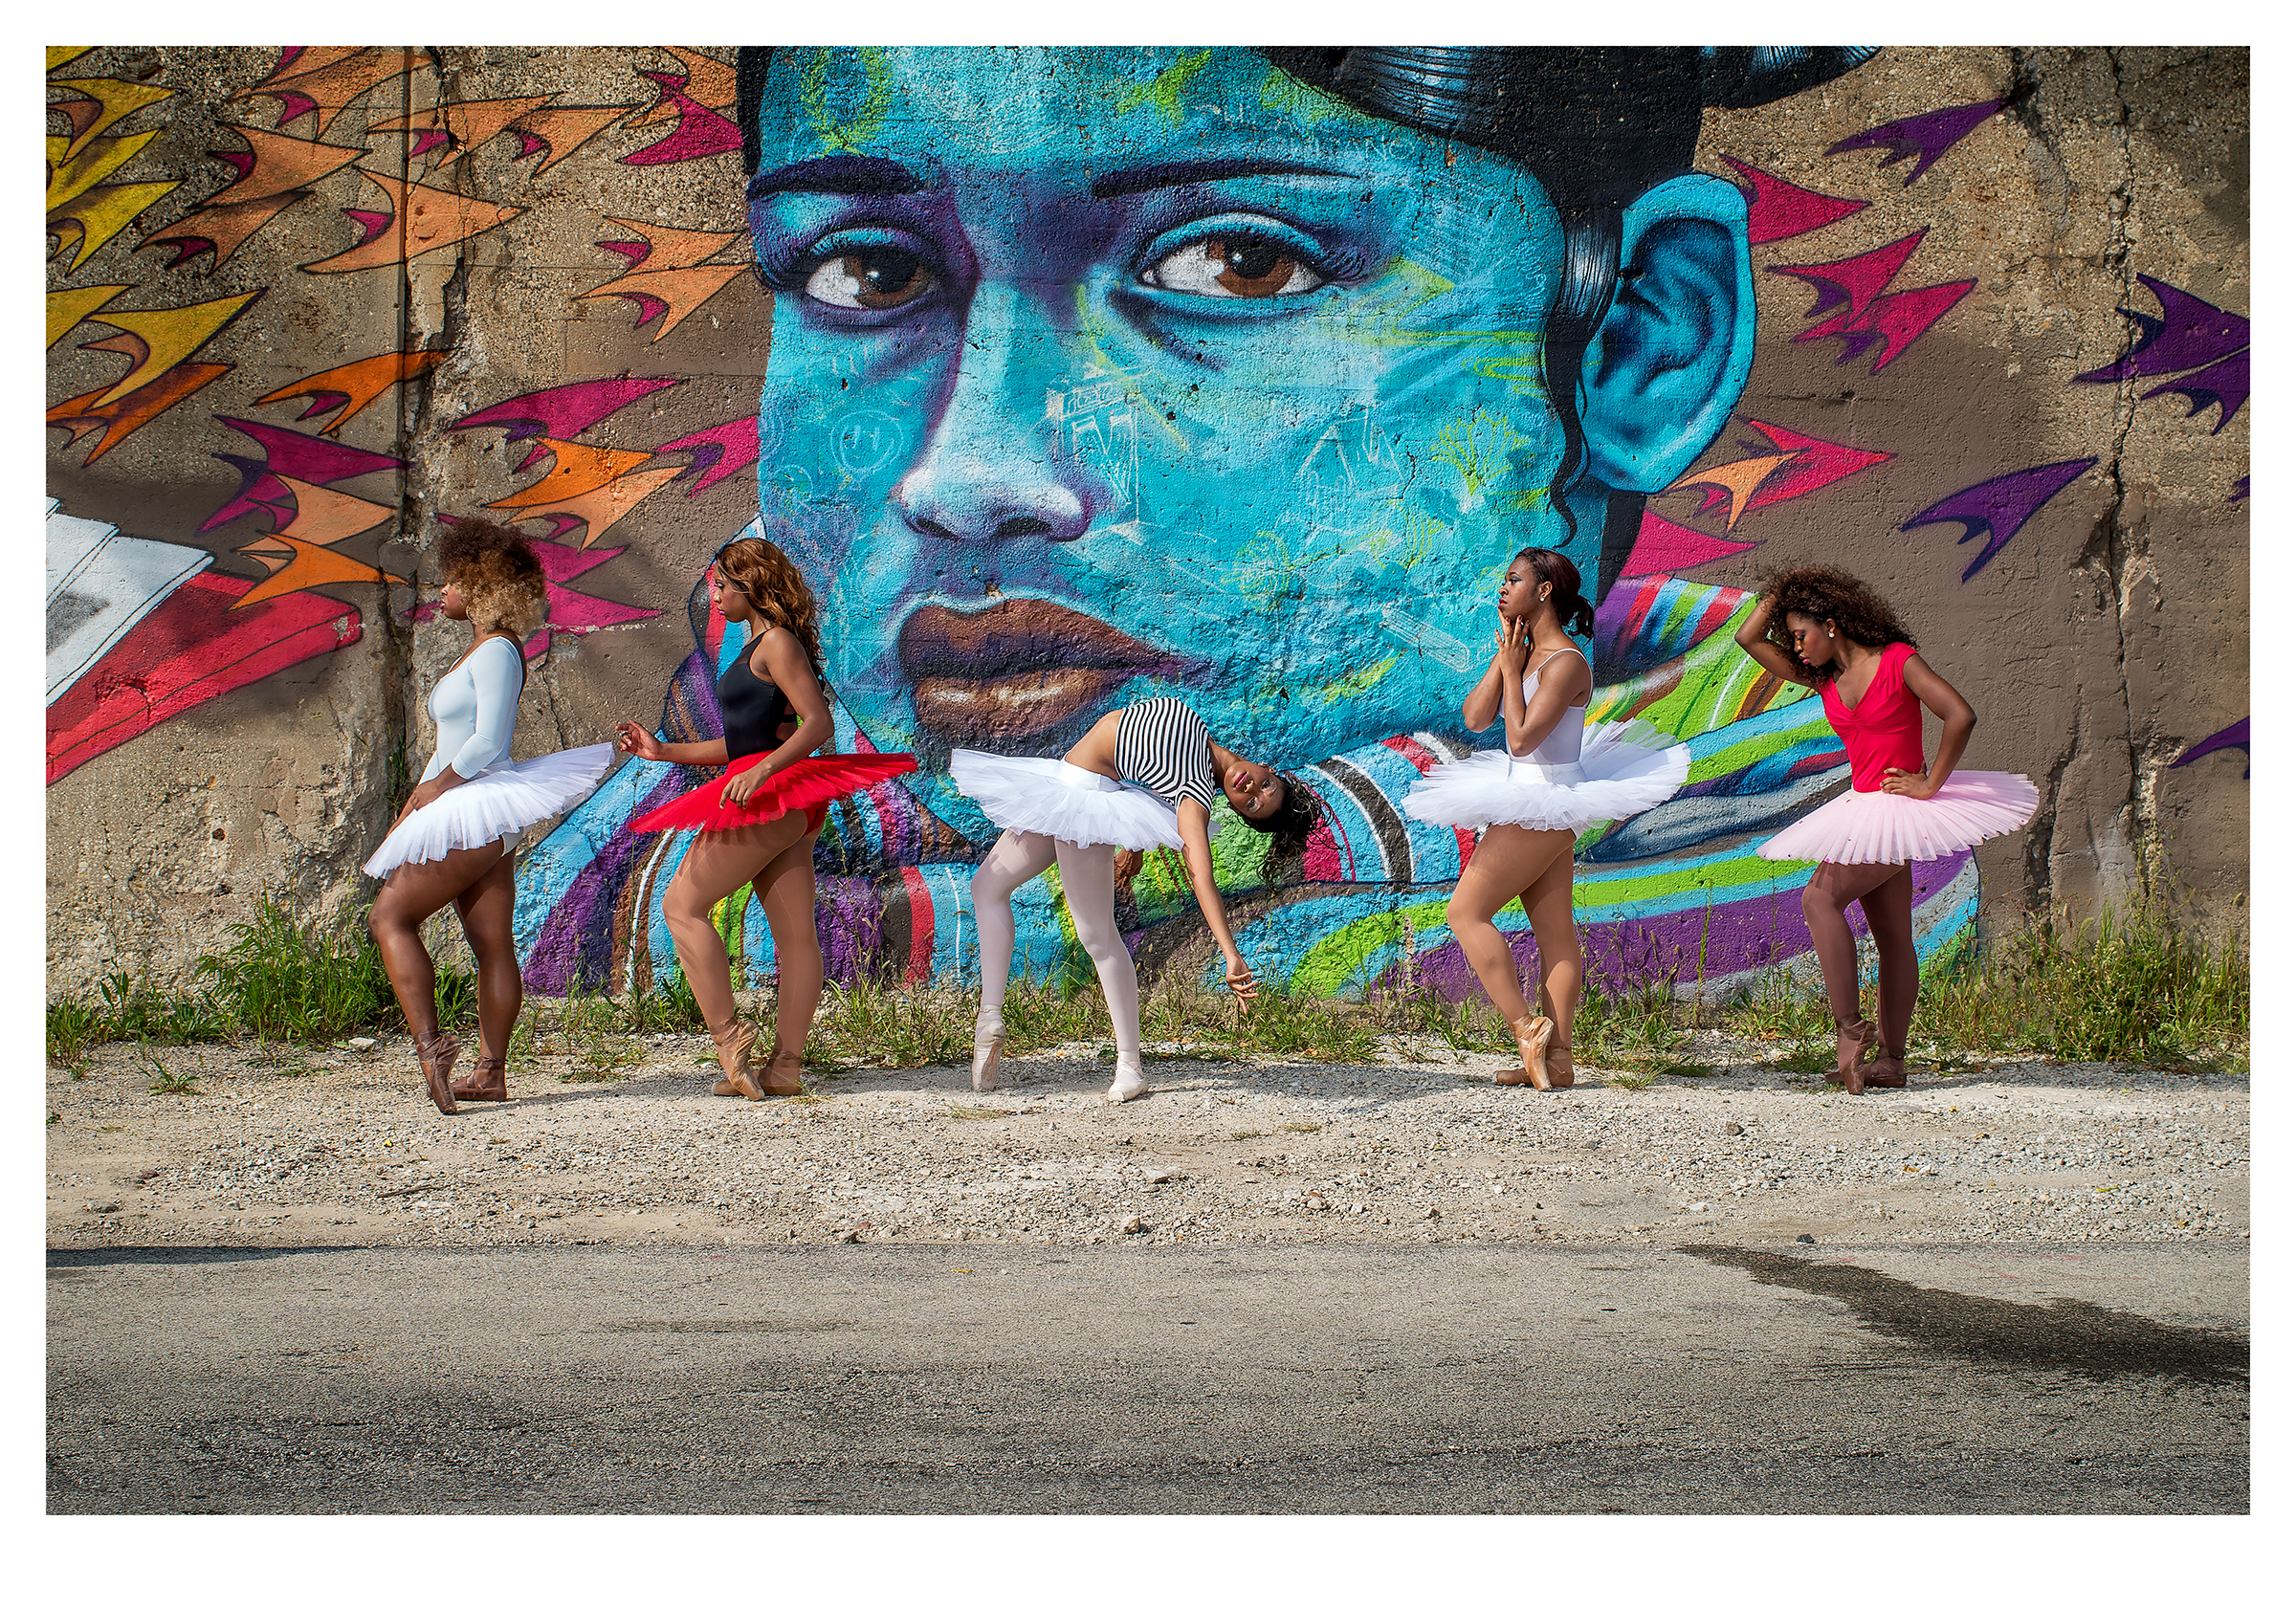 ballerinas and the blue chicana | © preston lewis thomas |  mural by artist over under